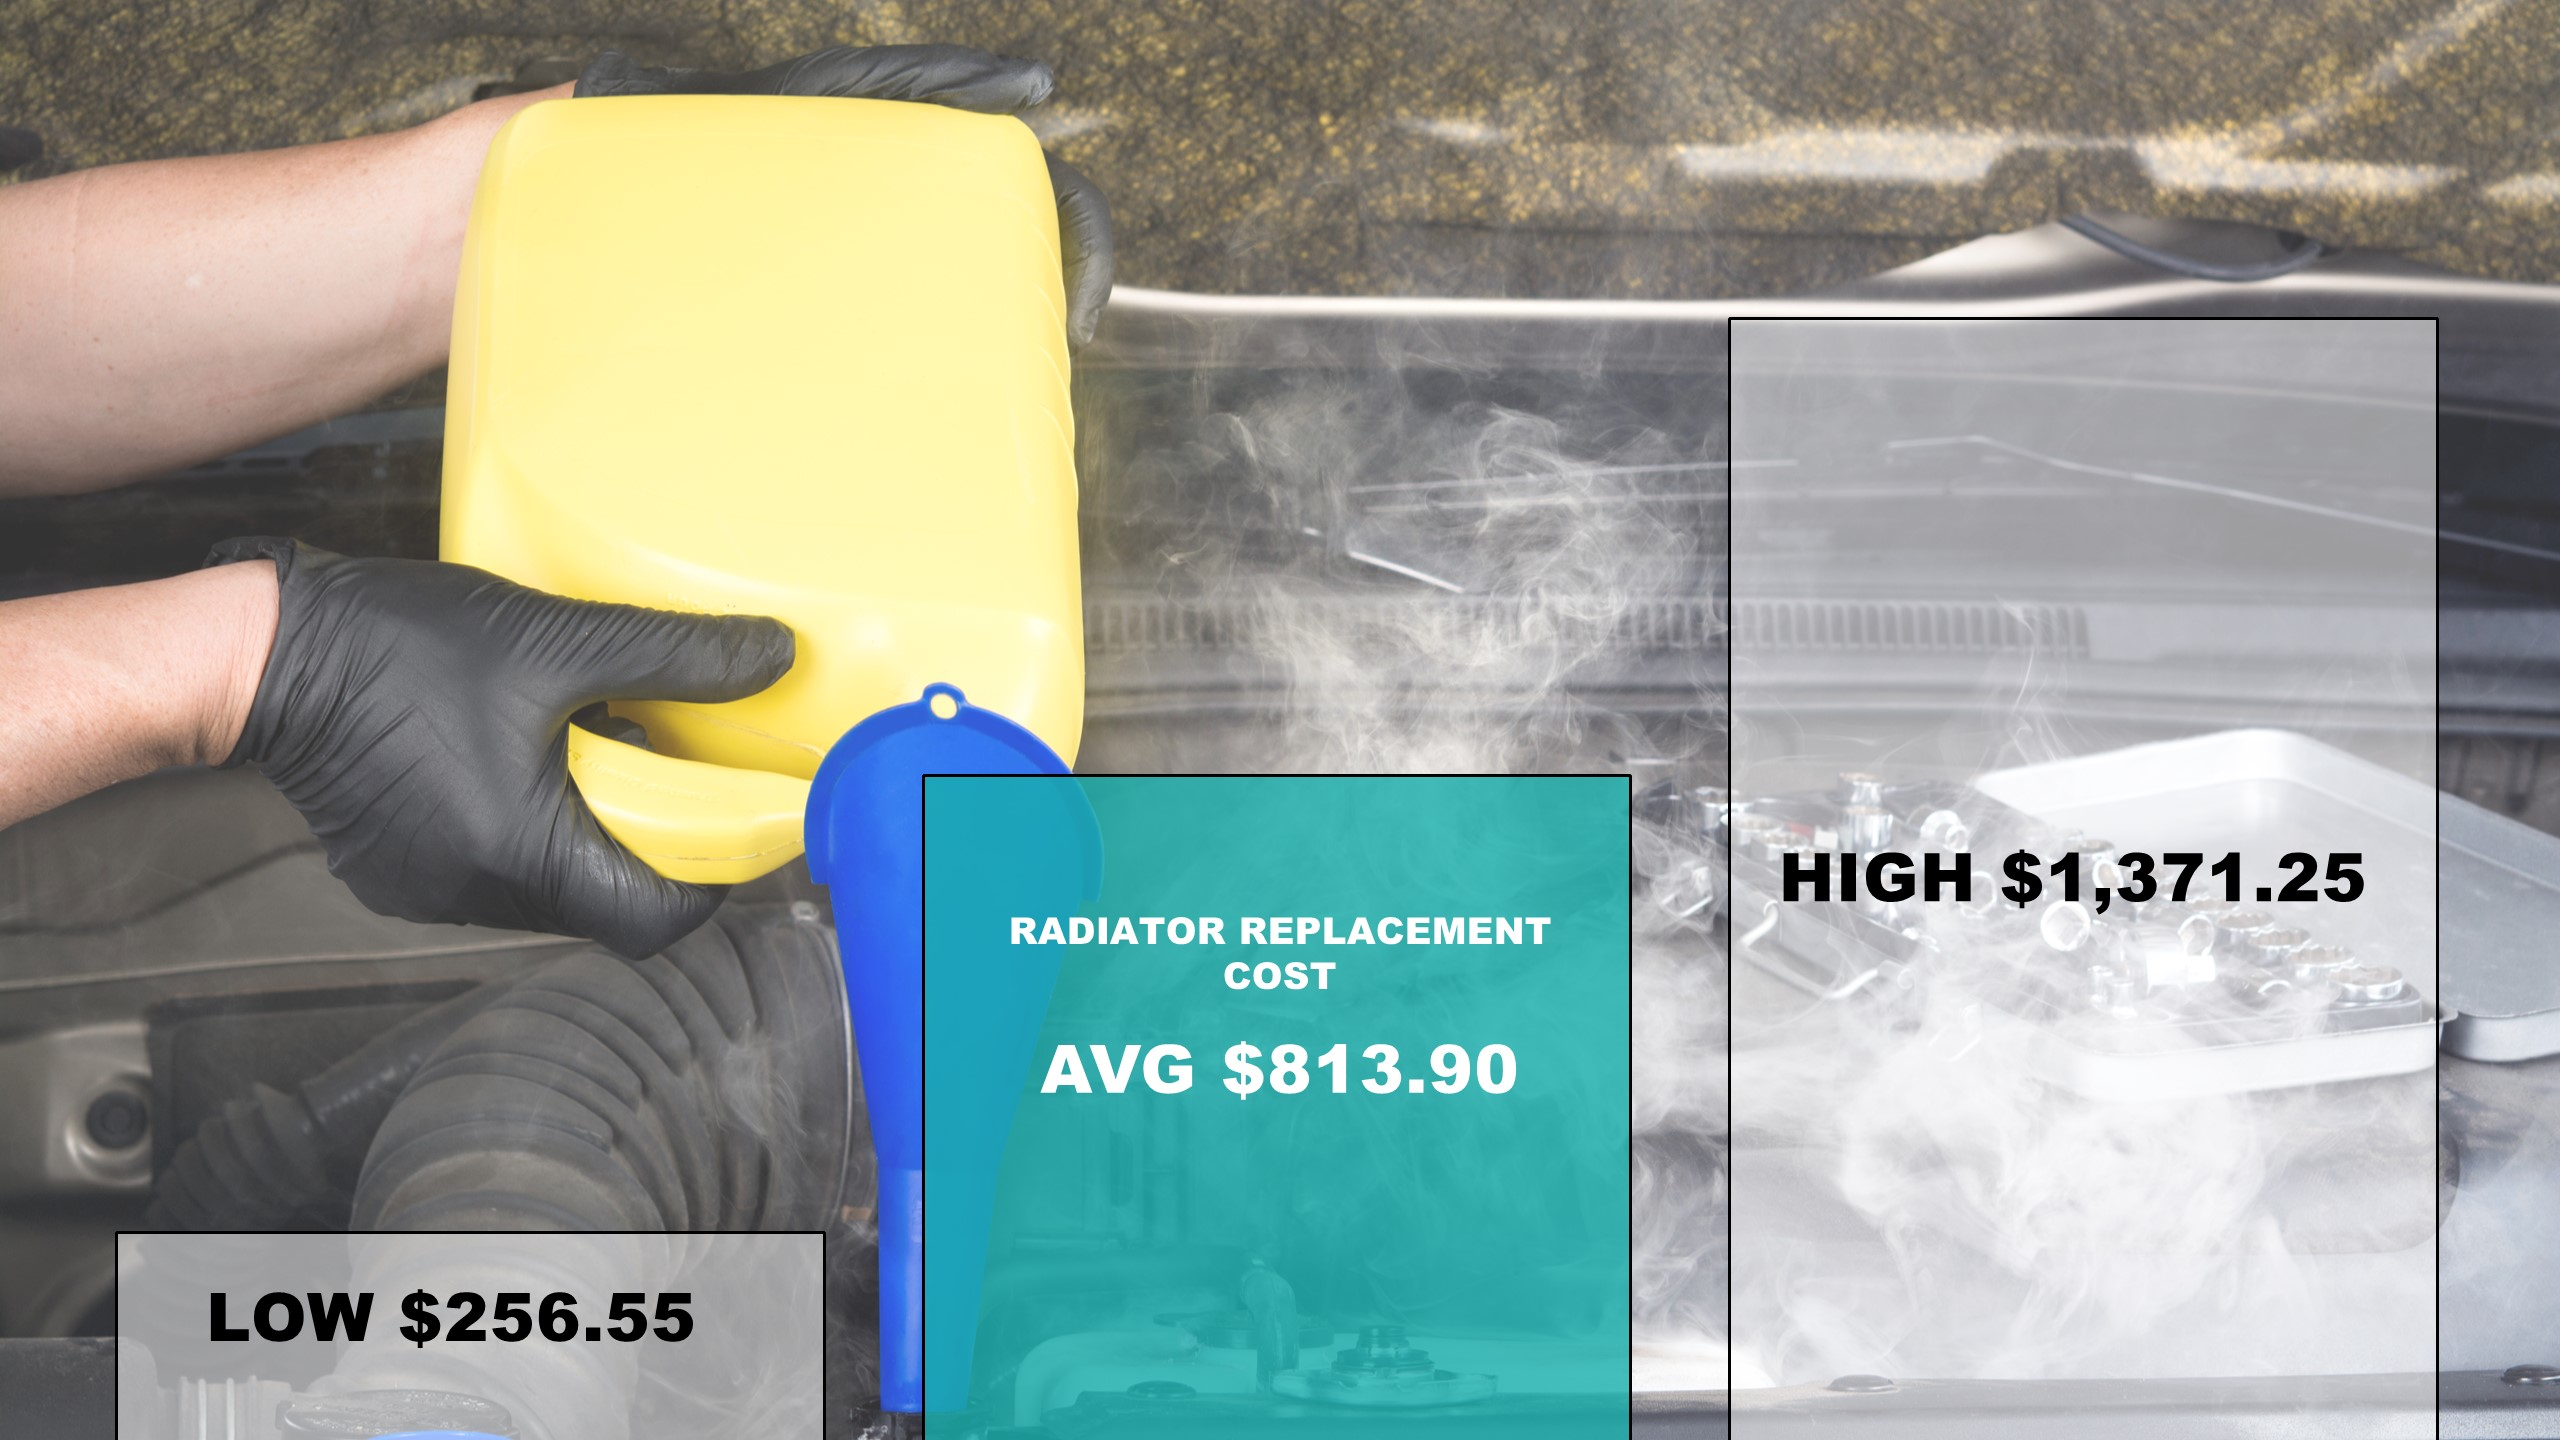 How Much Does Auto Radiator Replacement Cost?